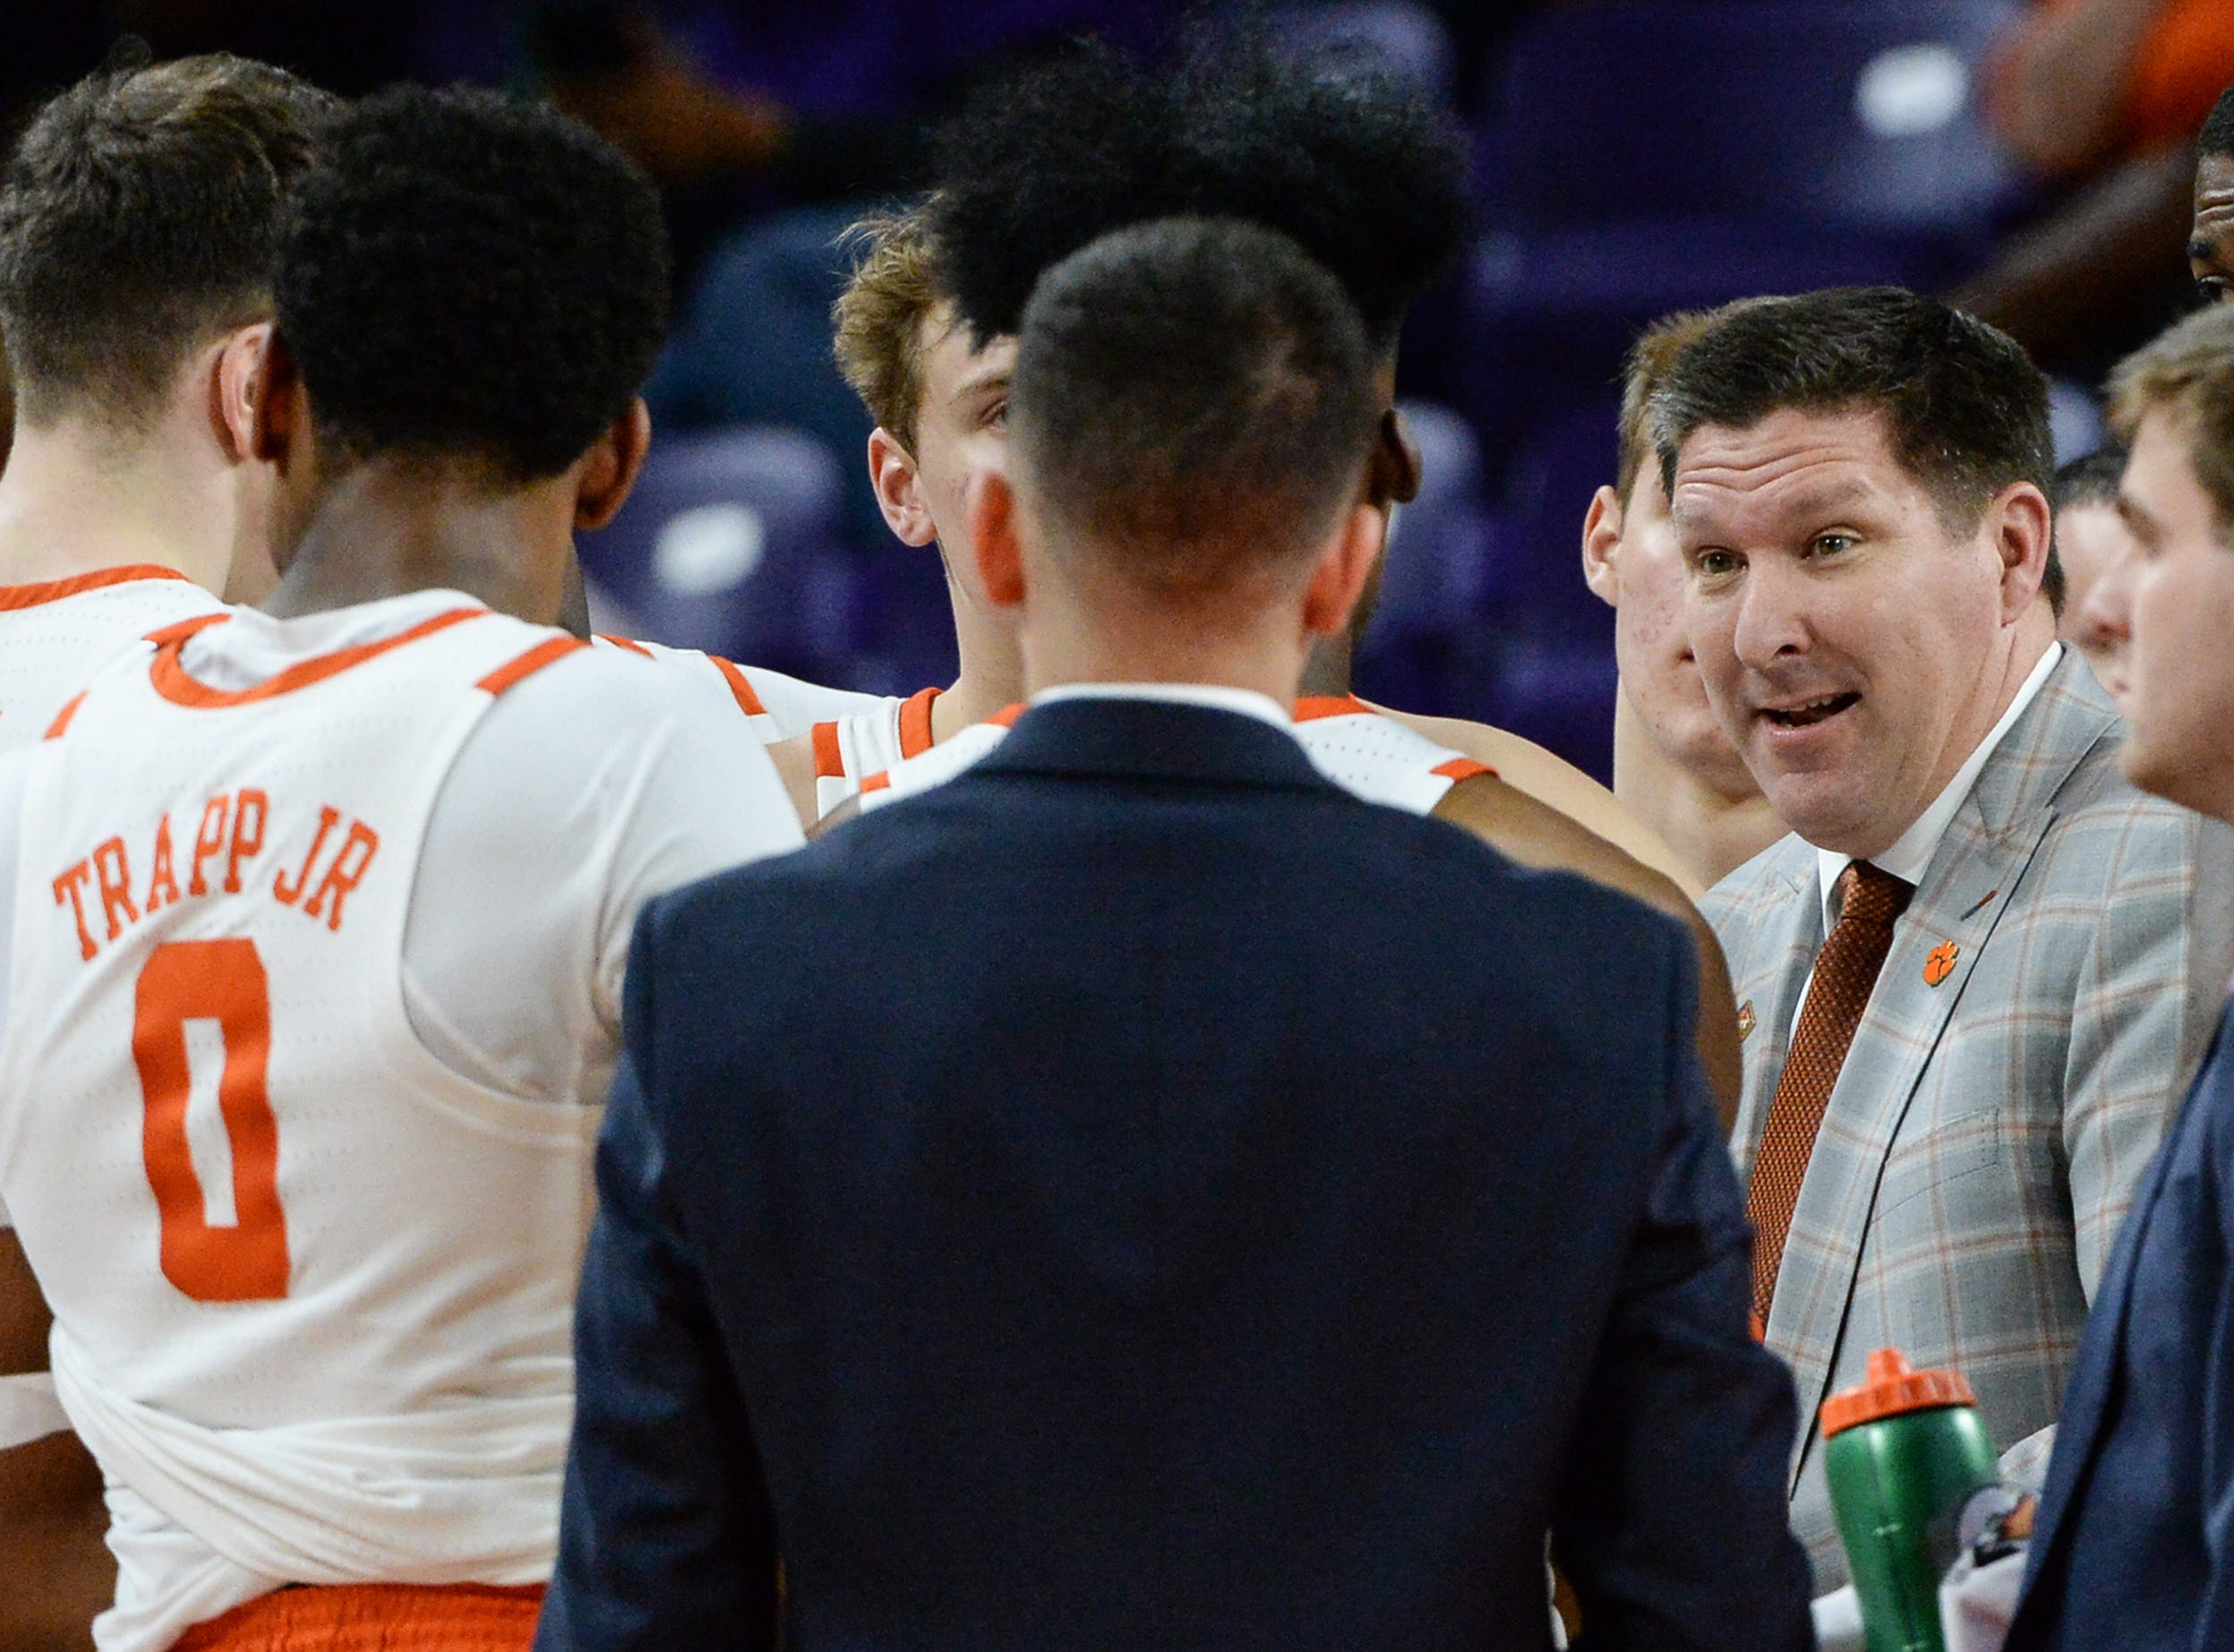 Clemson head coach Brad Brownell talks with player during the first half of the NIT at Littlejohn Coliseum in Clemson Tuesday, March 19, 2019.